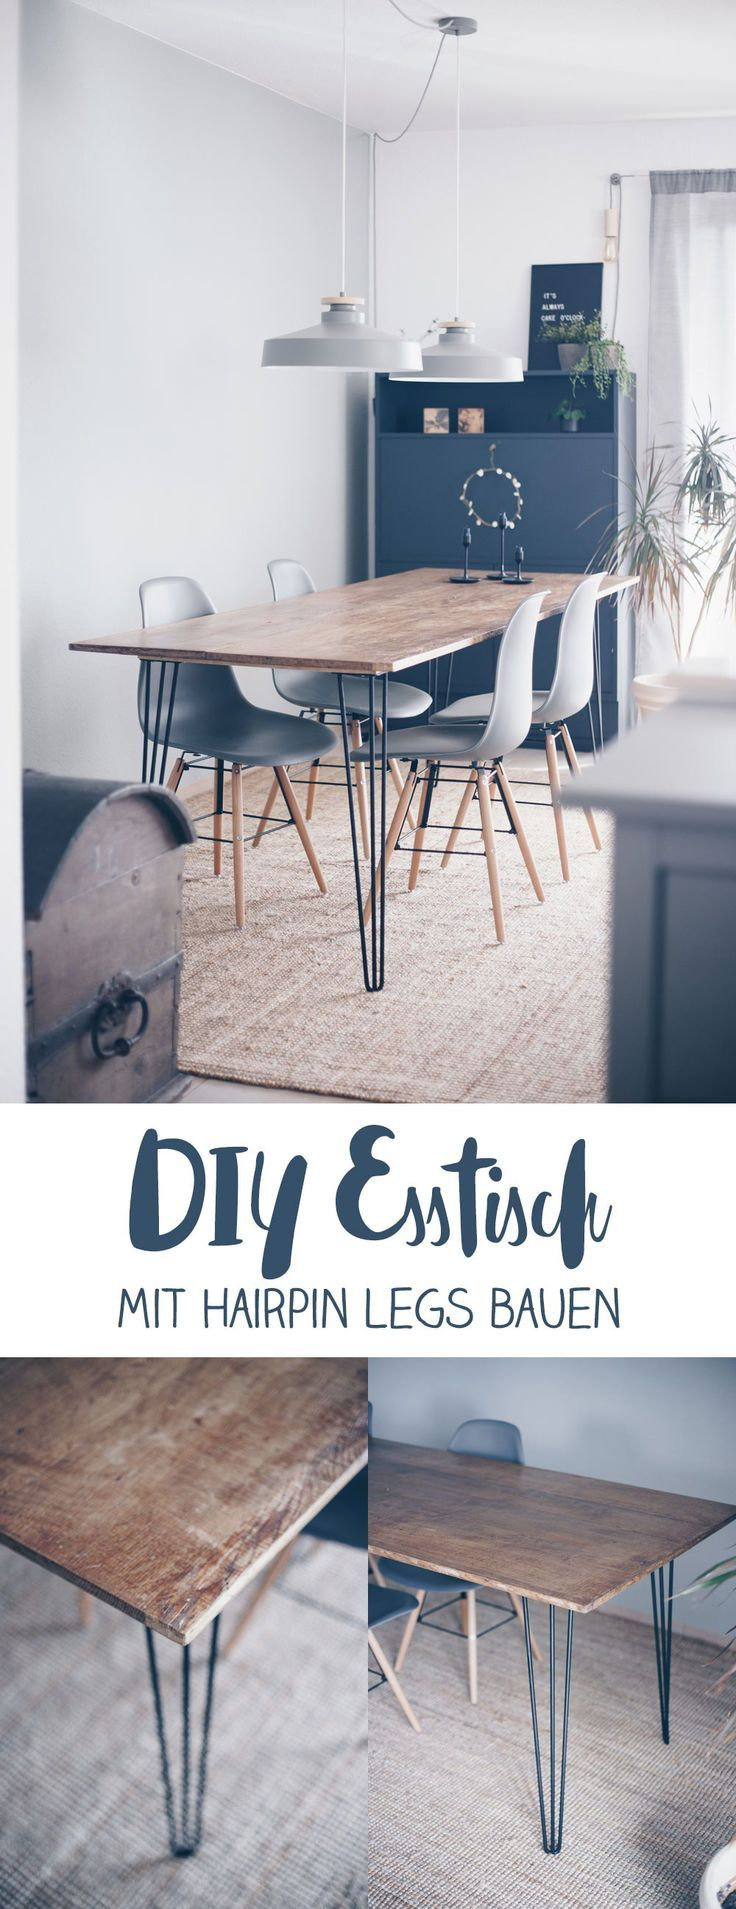 Photo of Make your own DIY dining table with hairpin legs – build your own furniture – DIY idea